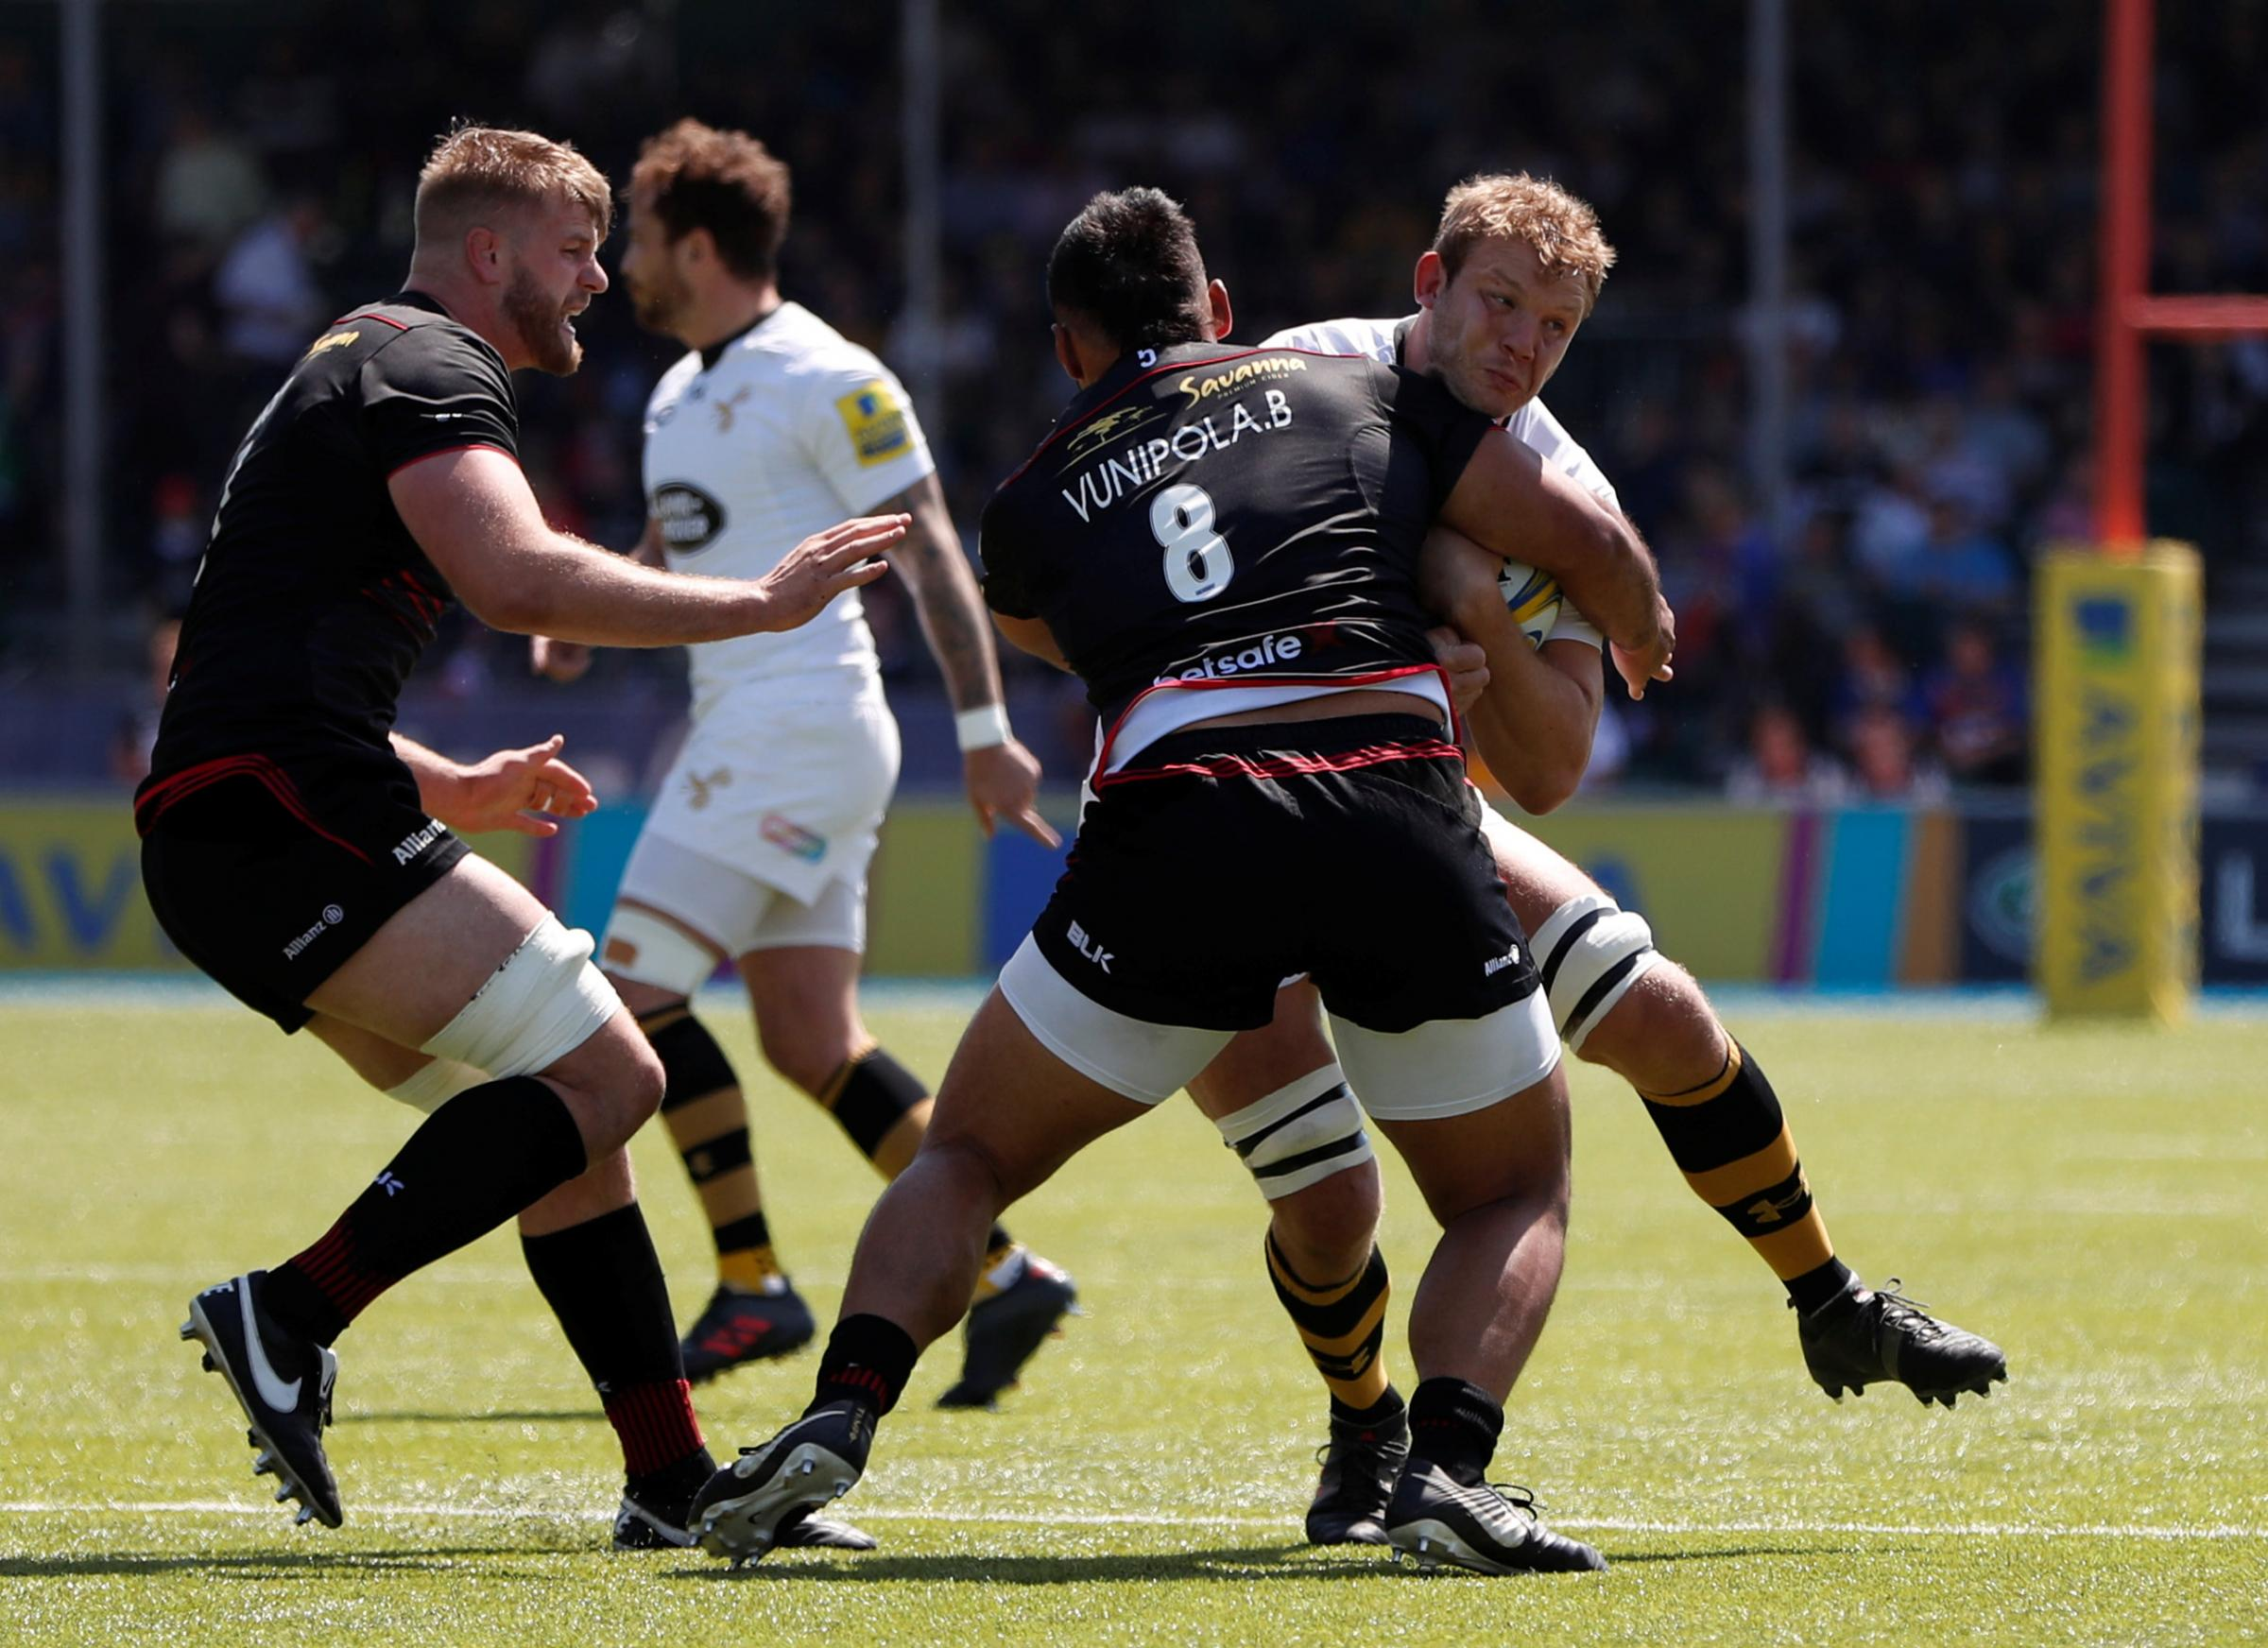 Billy Vunipola tackles Joe Launchbury in the semi-final win over Wasps before being forced off. Picture: Action Images